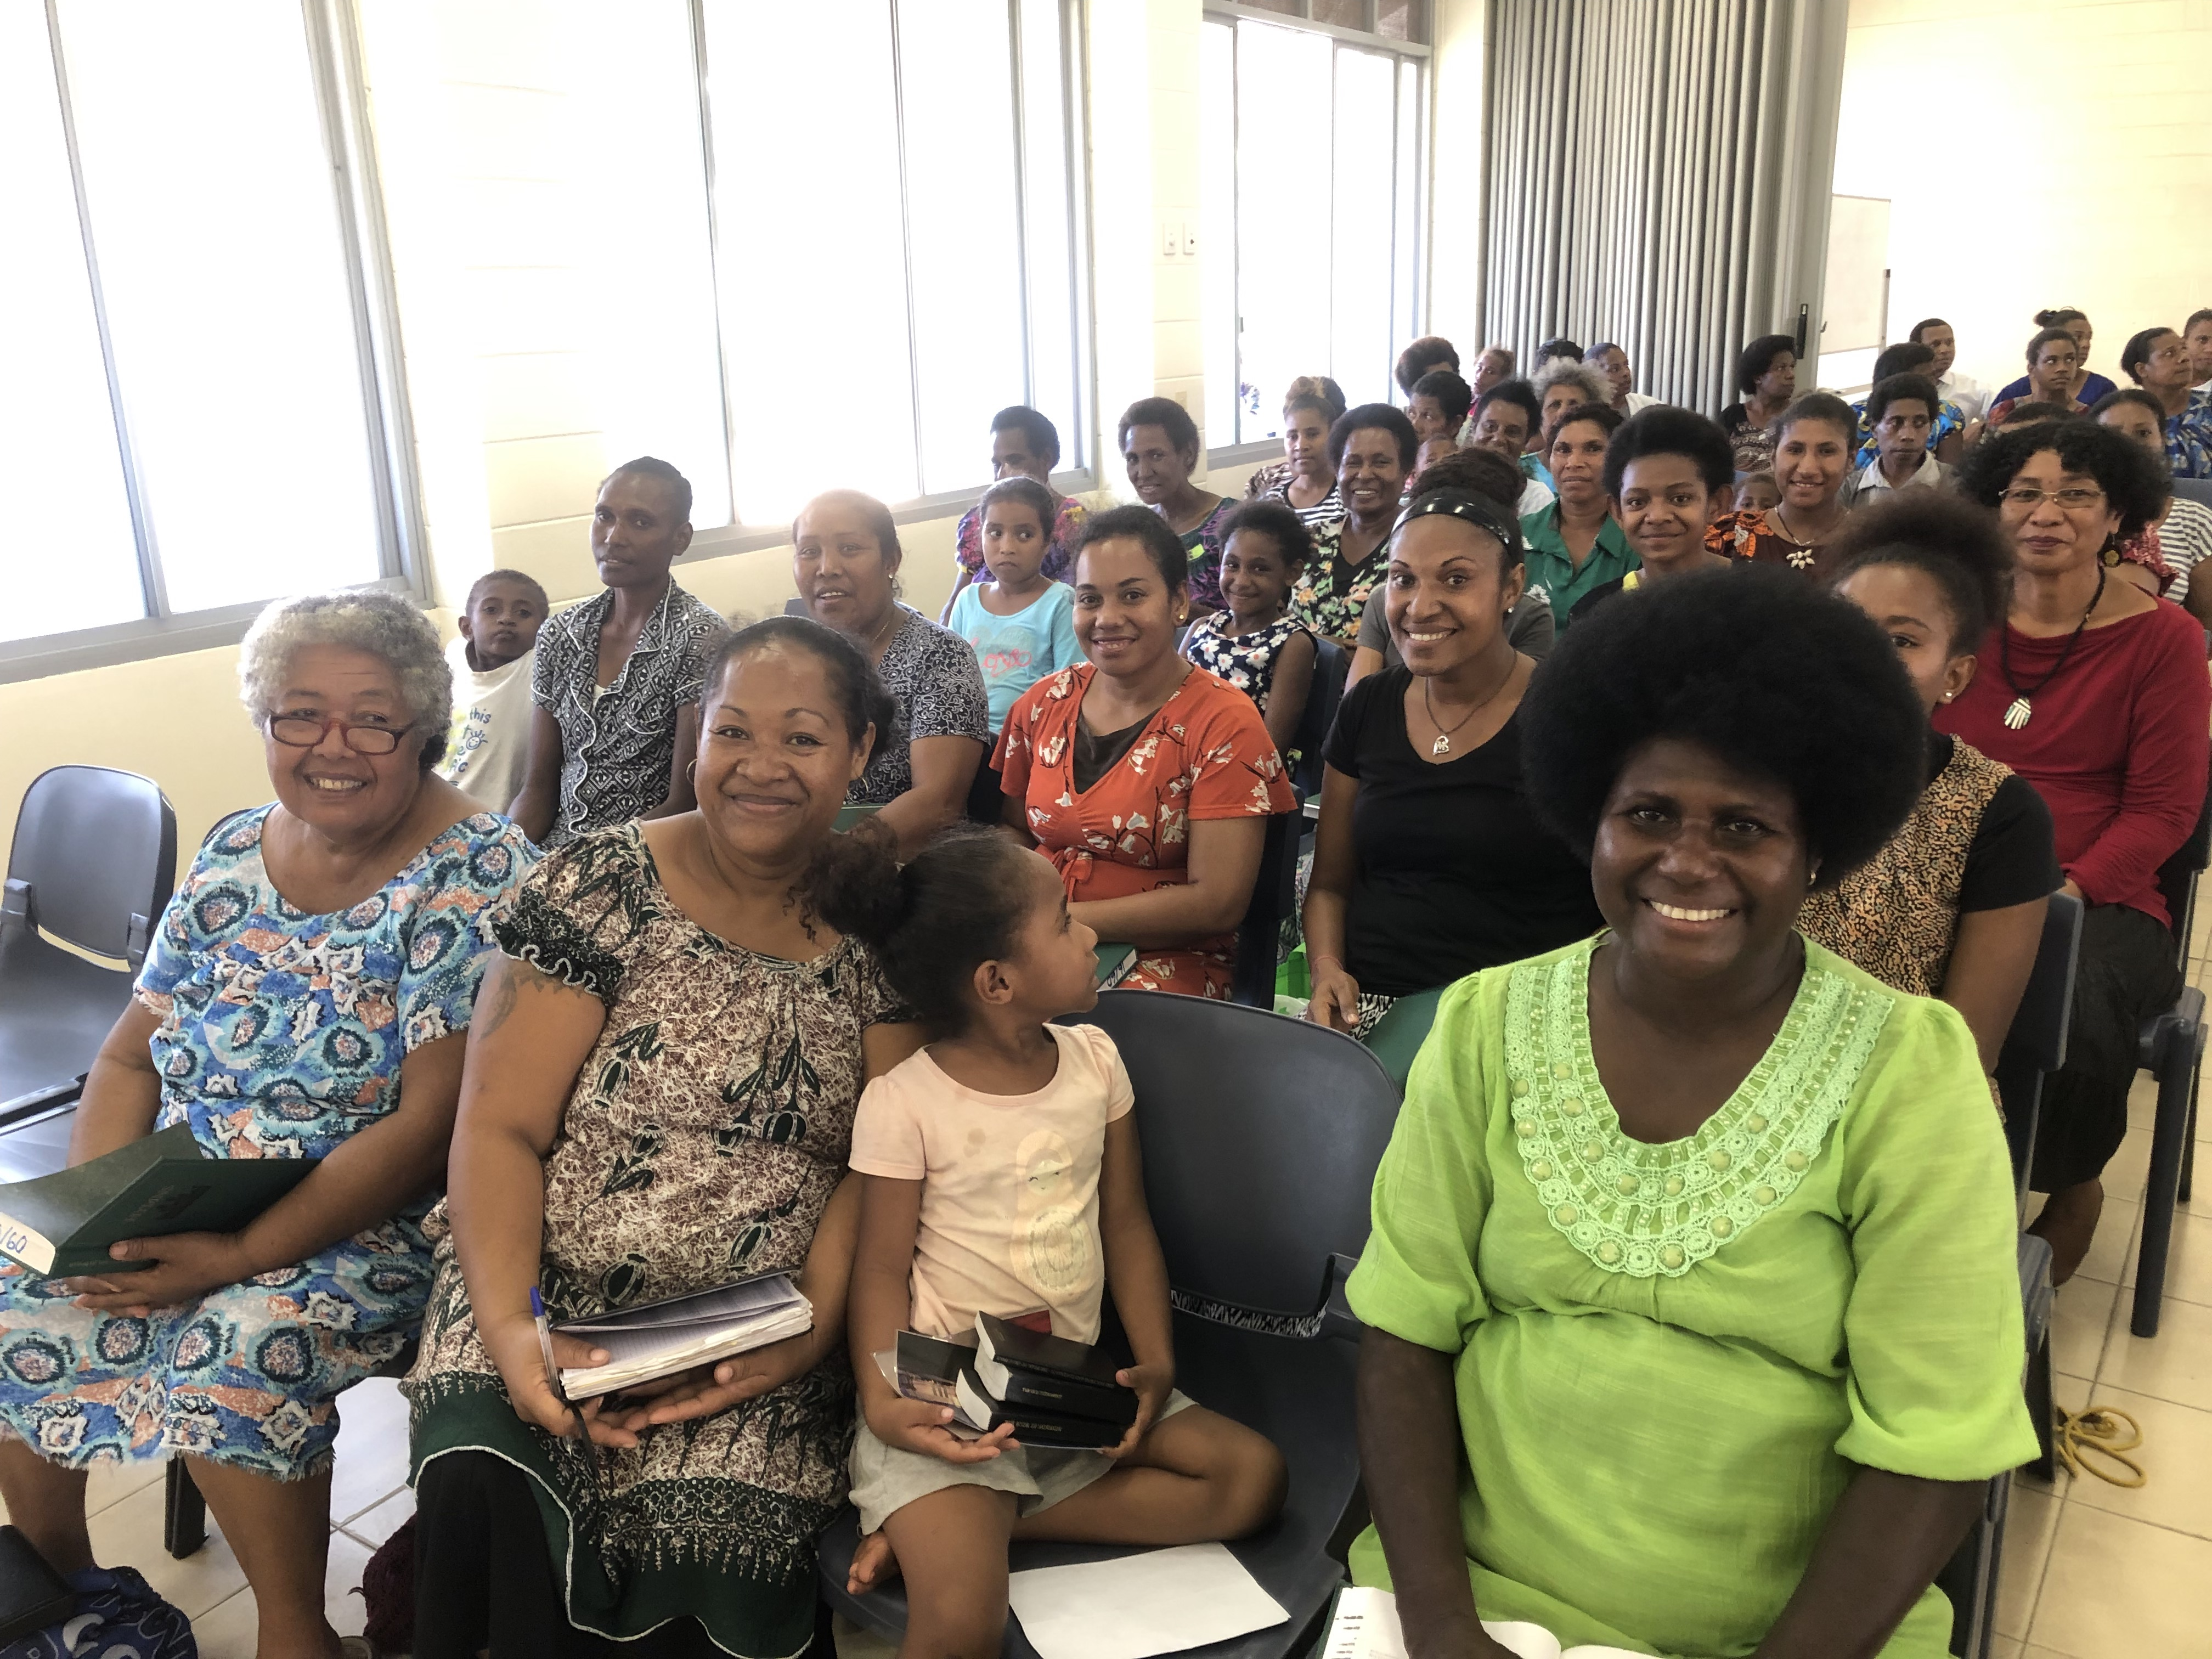 Members from the Port Moresby Papua New Guinea Stake and the Gerehu and Rigo districts in Papua New Guinea gather for a training meeting with Sister Sharon Eubank during her visit to the Pacific Area in October 2019.